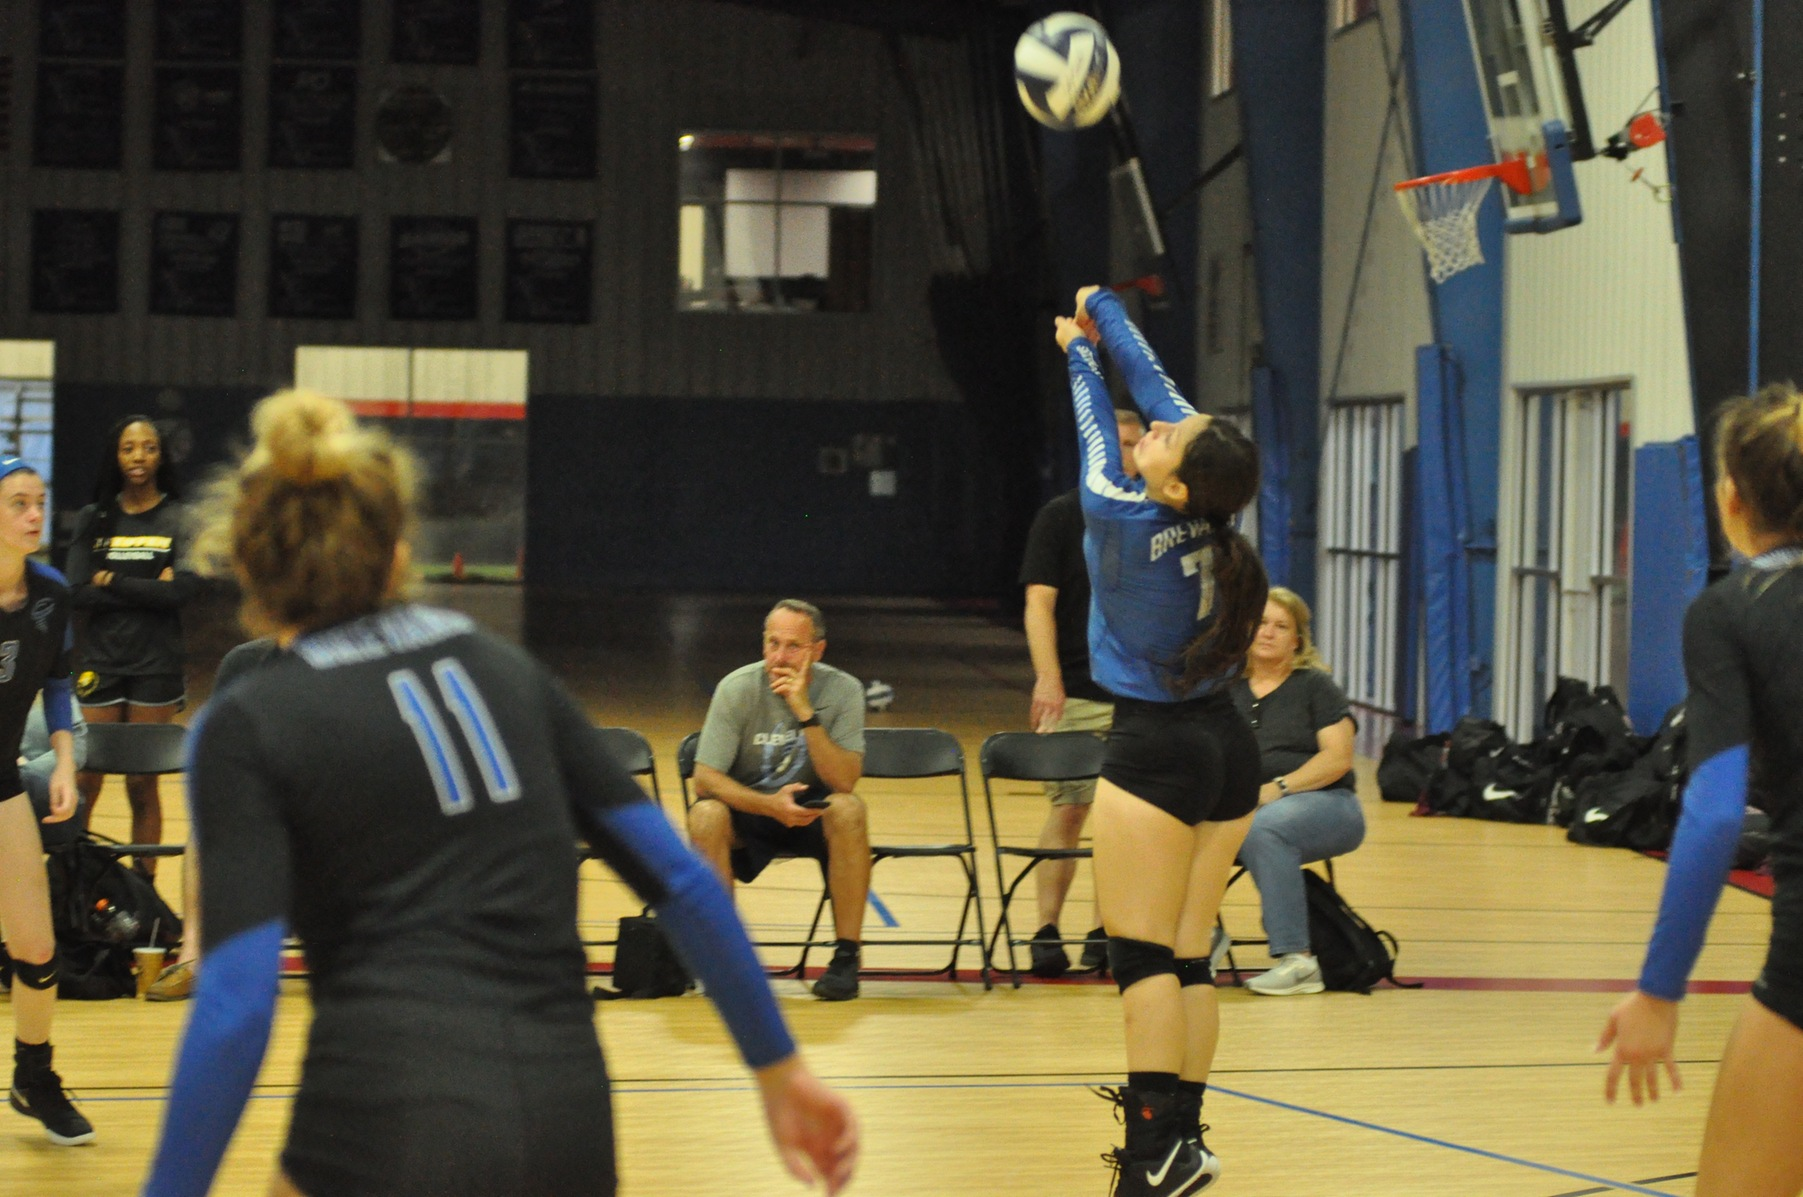 Women's Volleyball hosts the first day of the Tornado Challenge